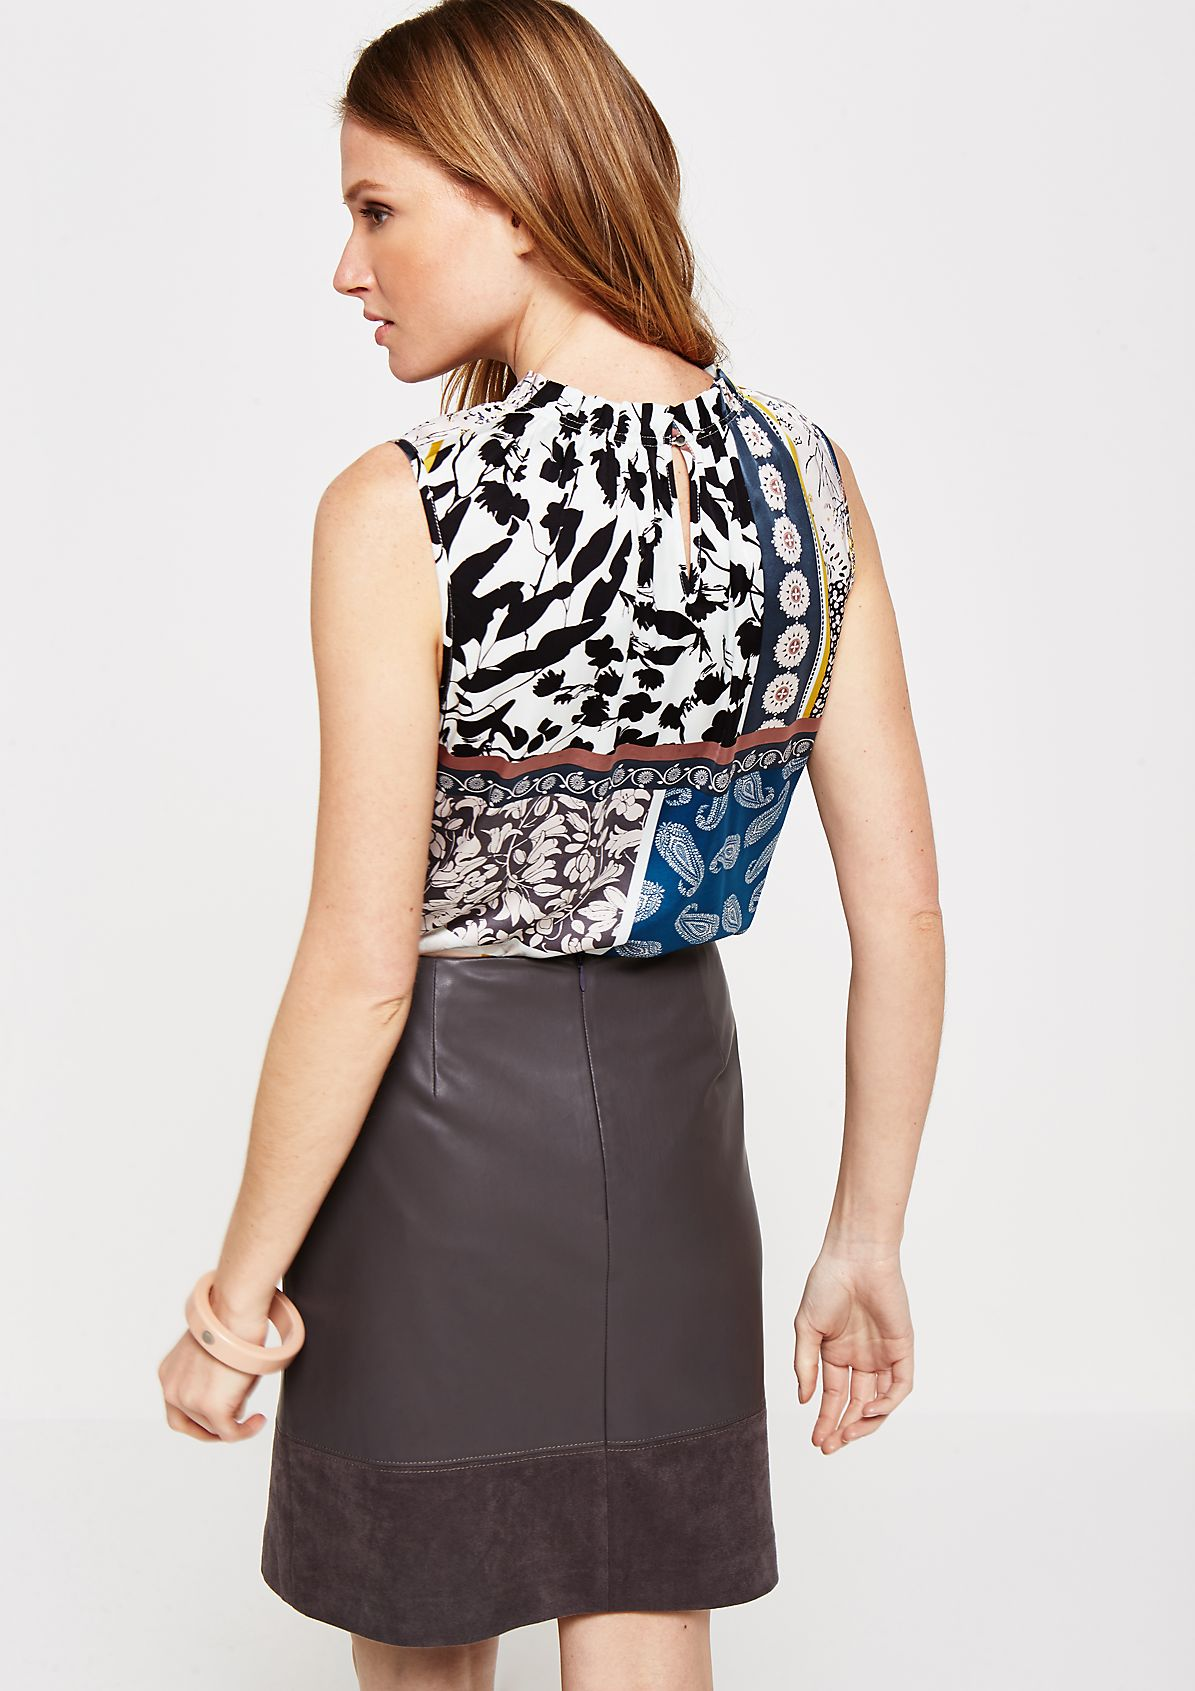 Lightweight satin top with an elaborate all-over print from s.Oliver